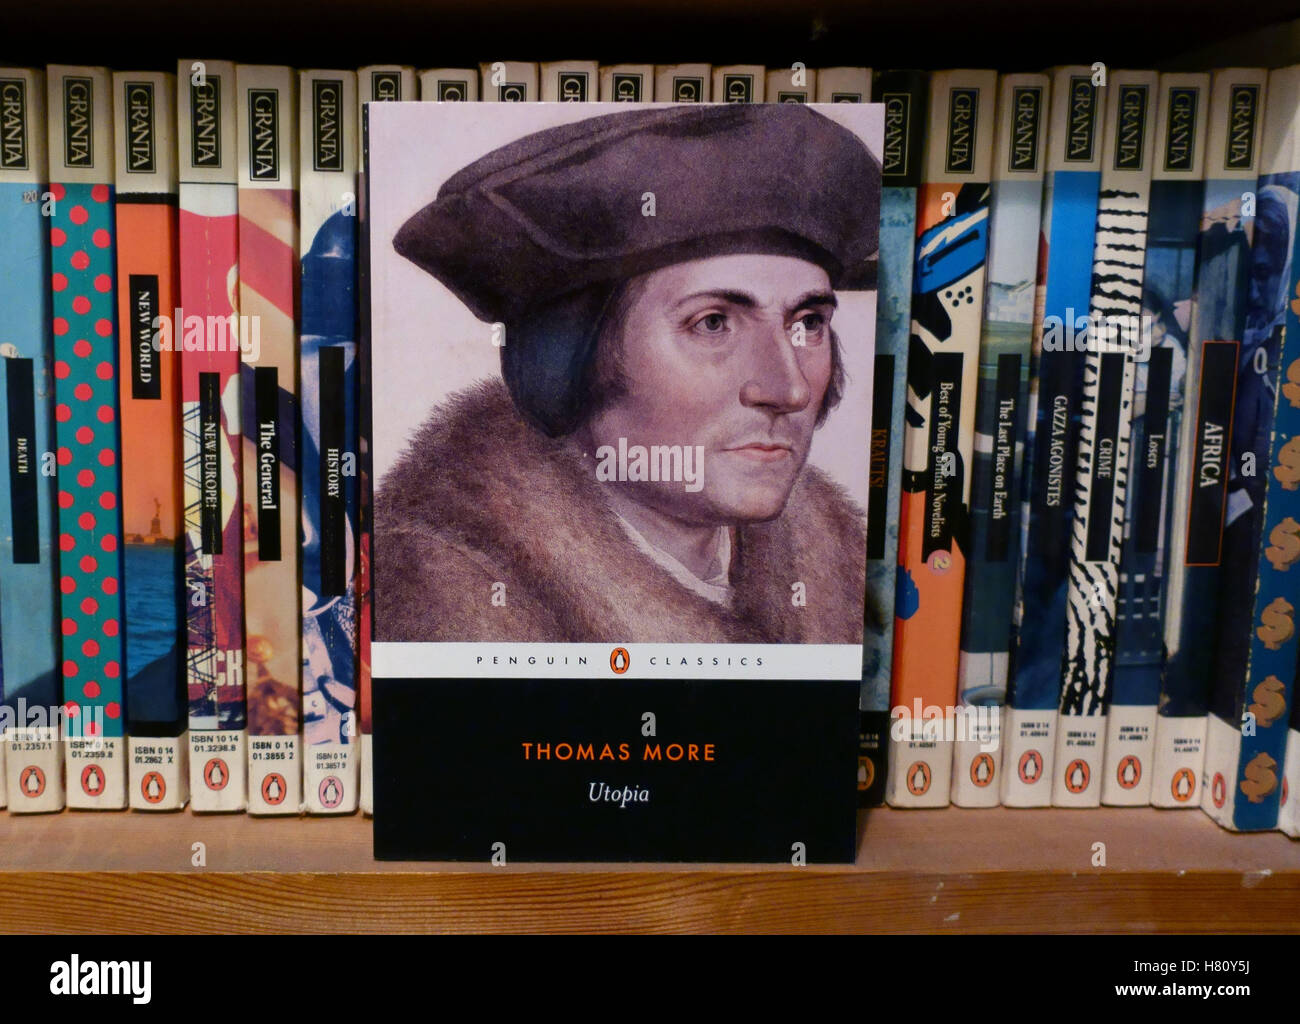 2016 is 500th anniversary of publication on Utopia by Thomas More, London - Stock Image